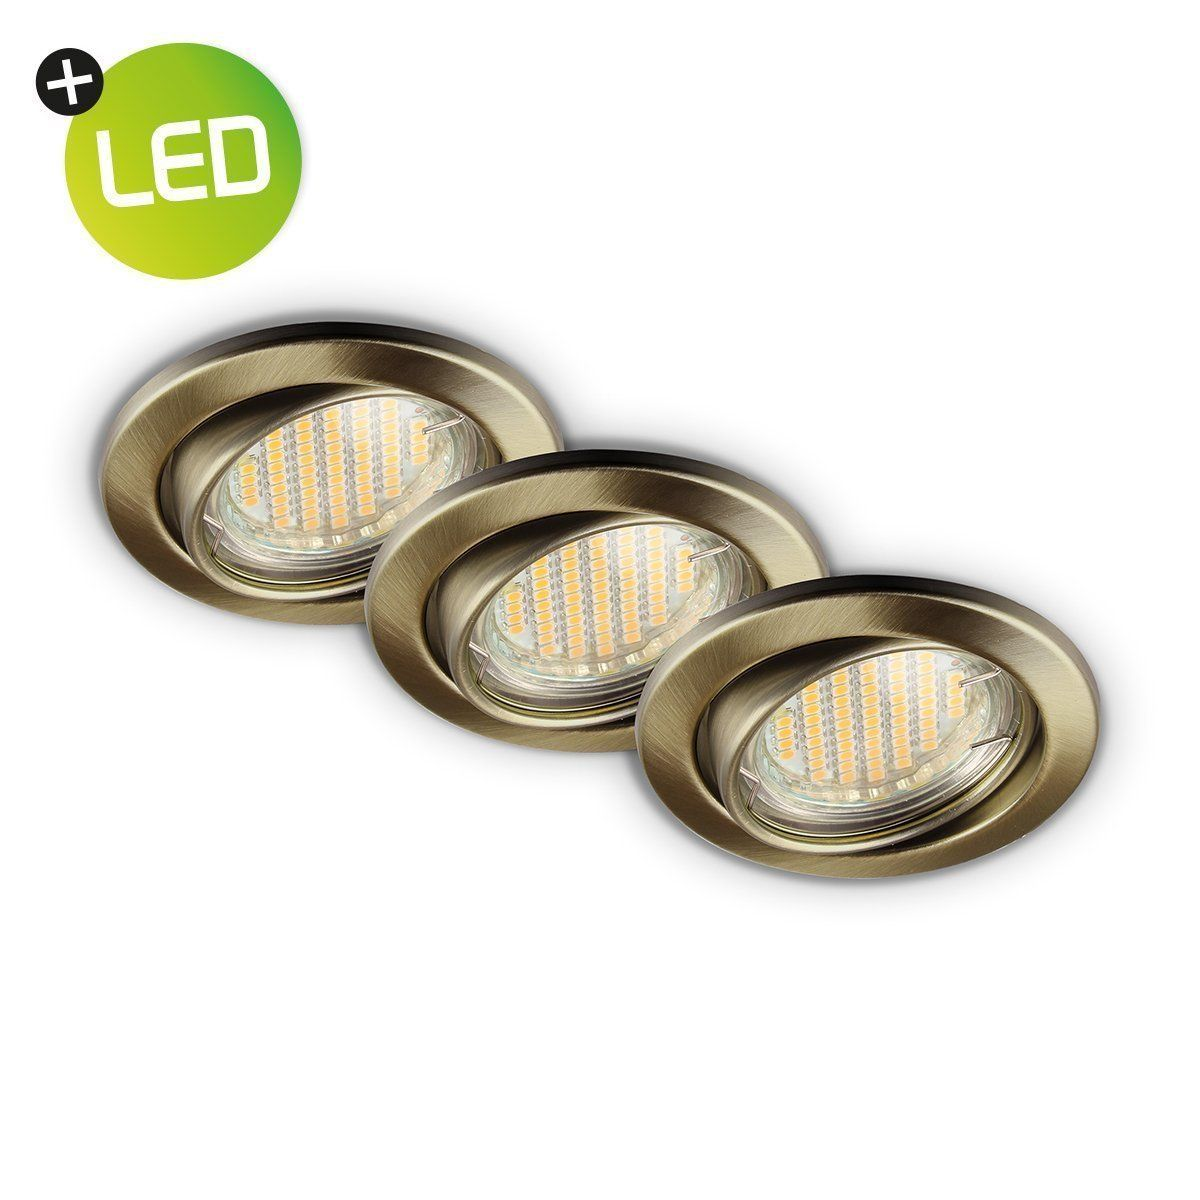 Home sweet home LED inbouwspot set Basic 3 x 3,2W Ø 8,2 cm - brons